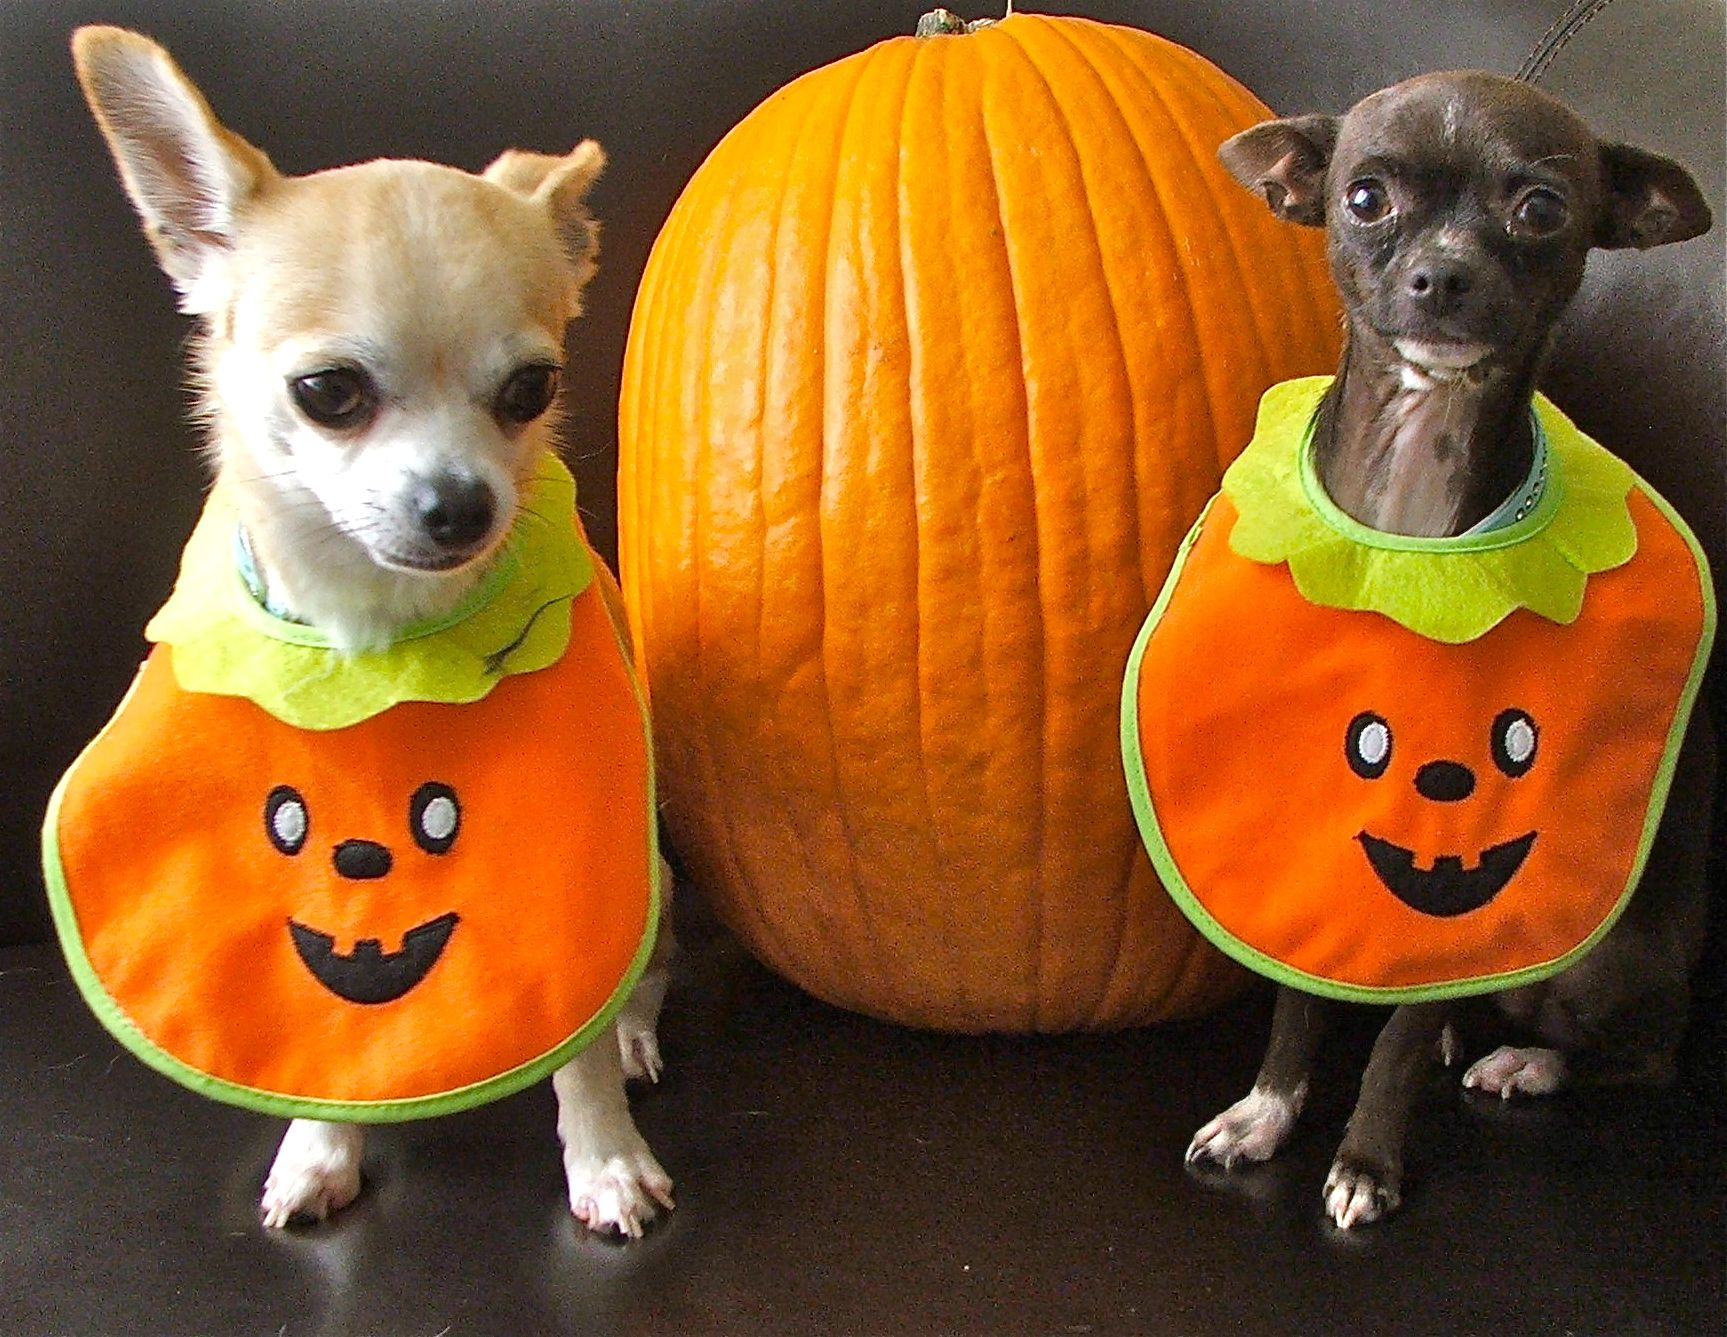 Halloween Chihuahuas {GROUP} Chihuahuas Best Dog Breed